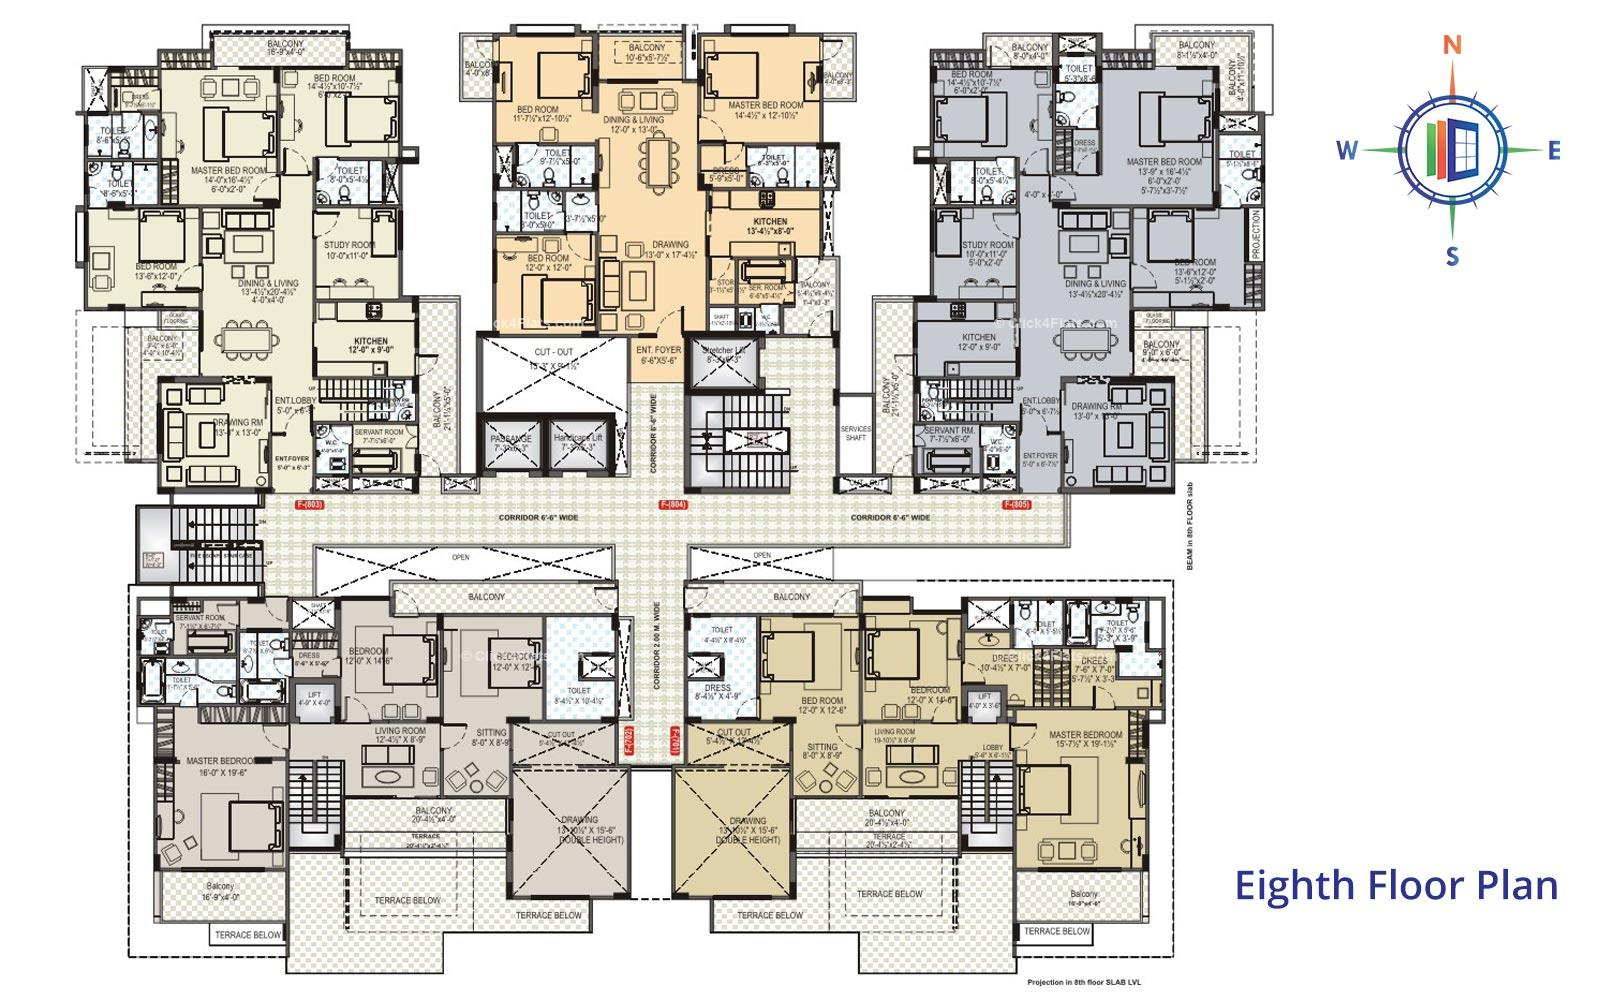 Akshat Trishala Eighth Floor Plan